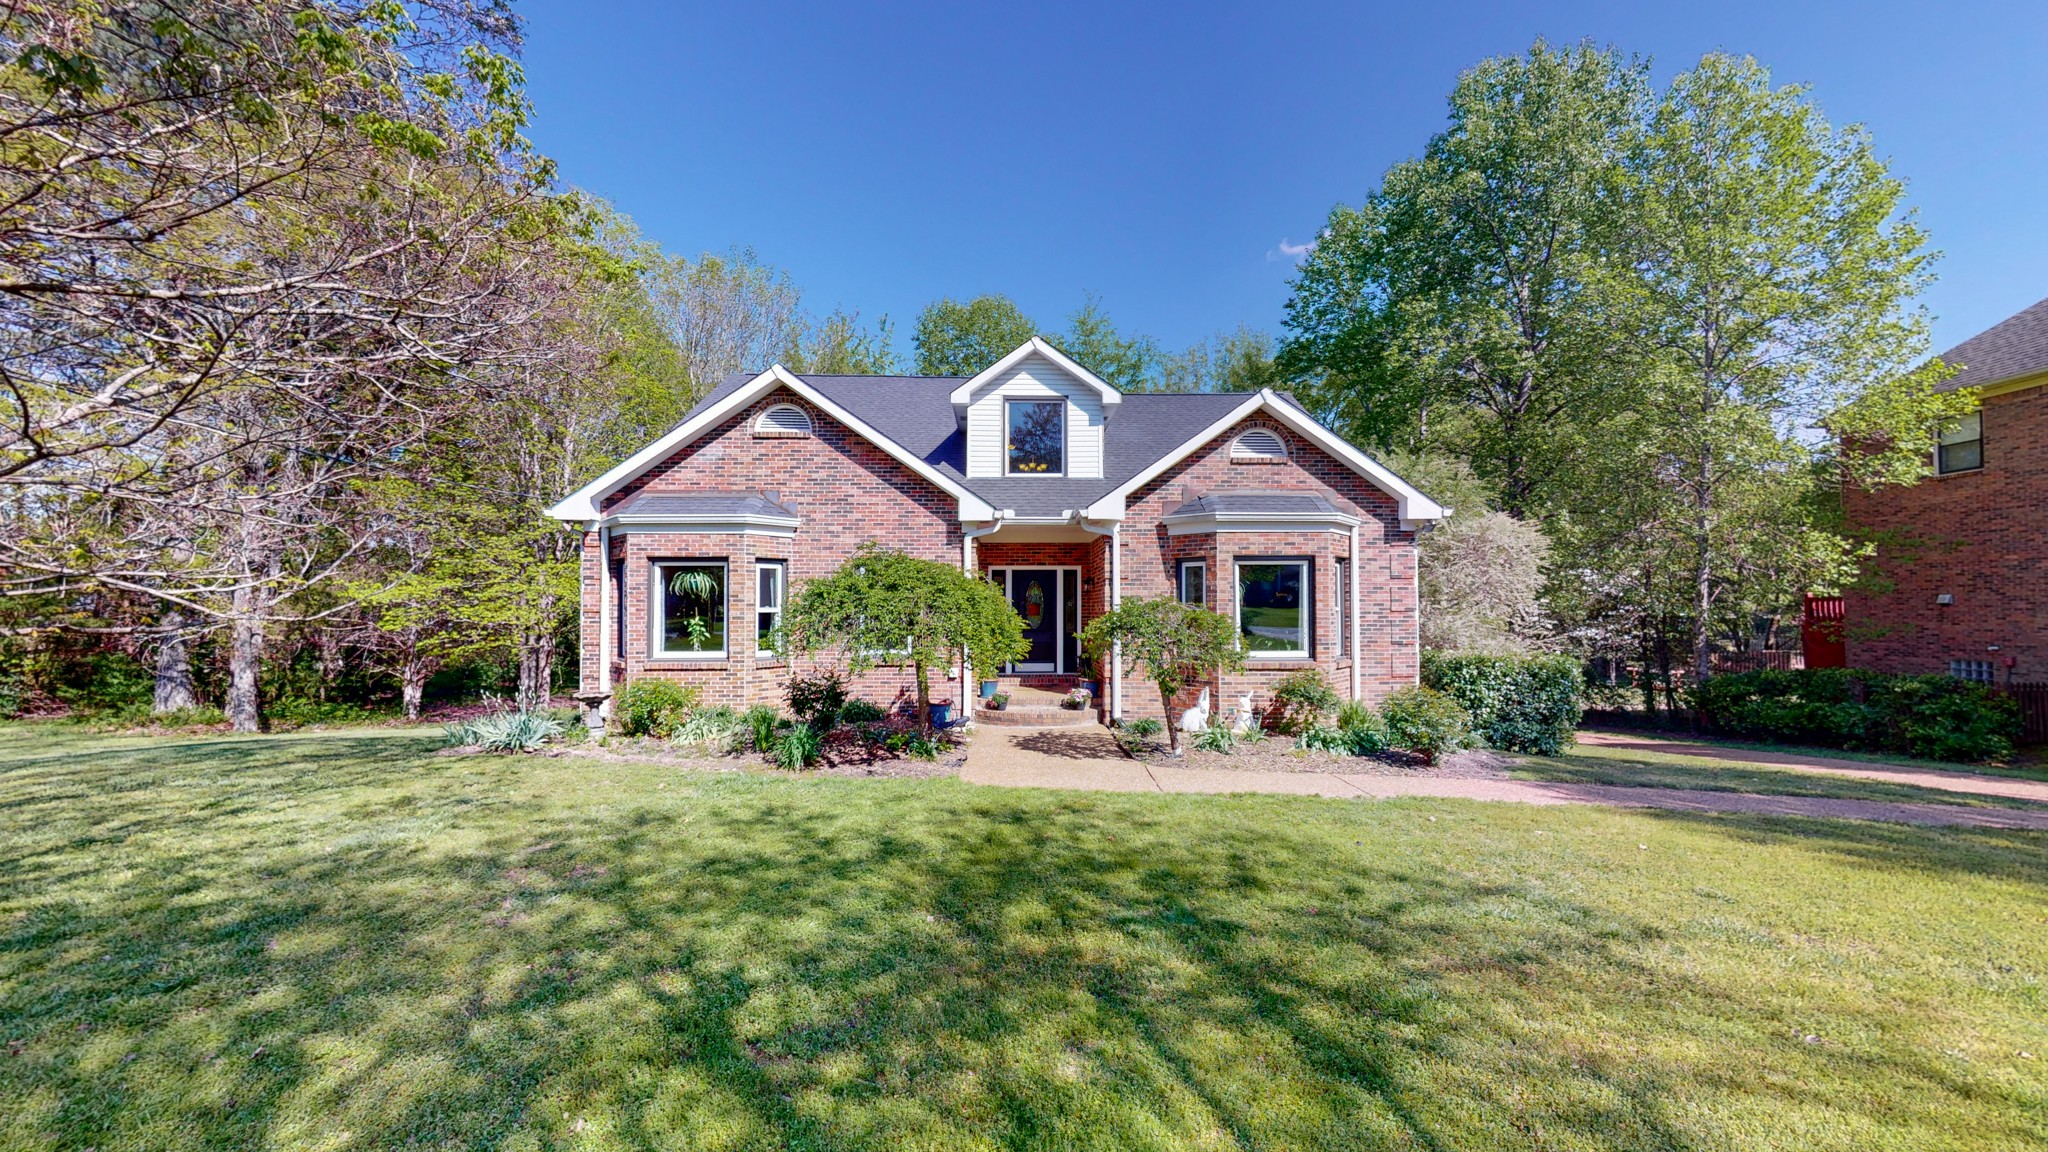 410 Ashley Ln, Kingston Springs, TN 37082 - Kingston Springs, TN real estate listing